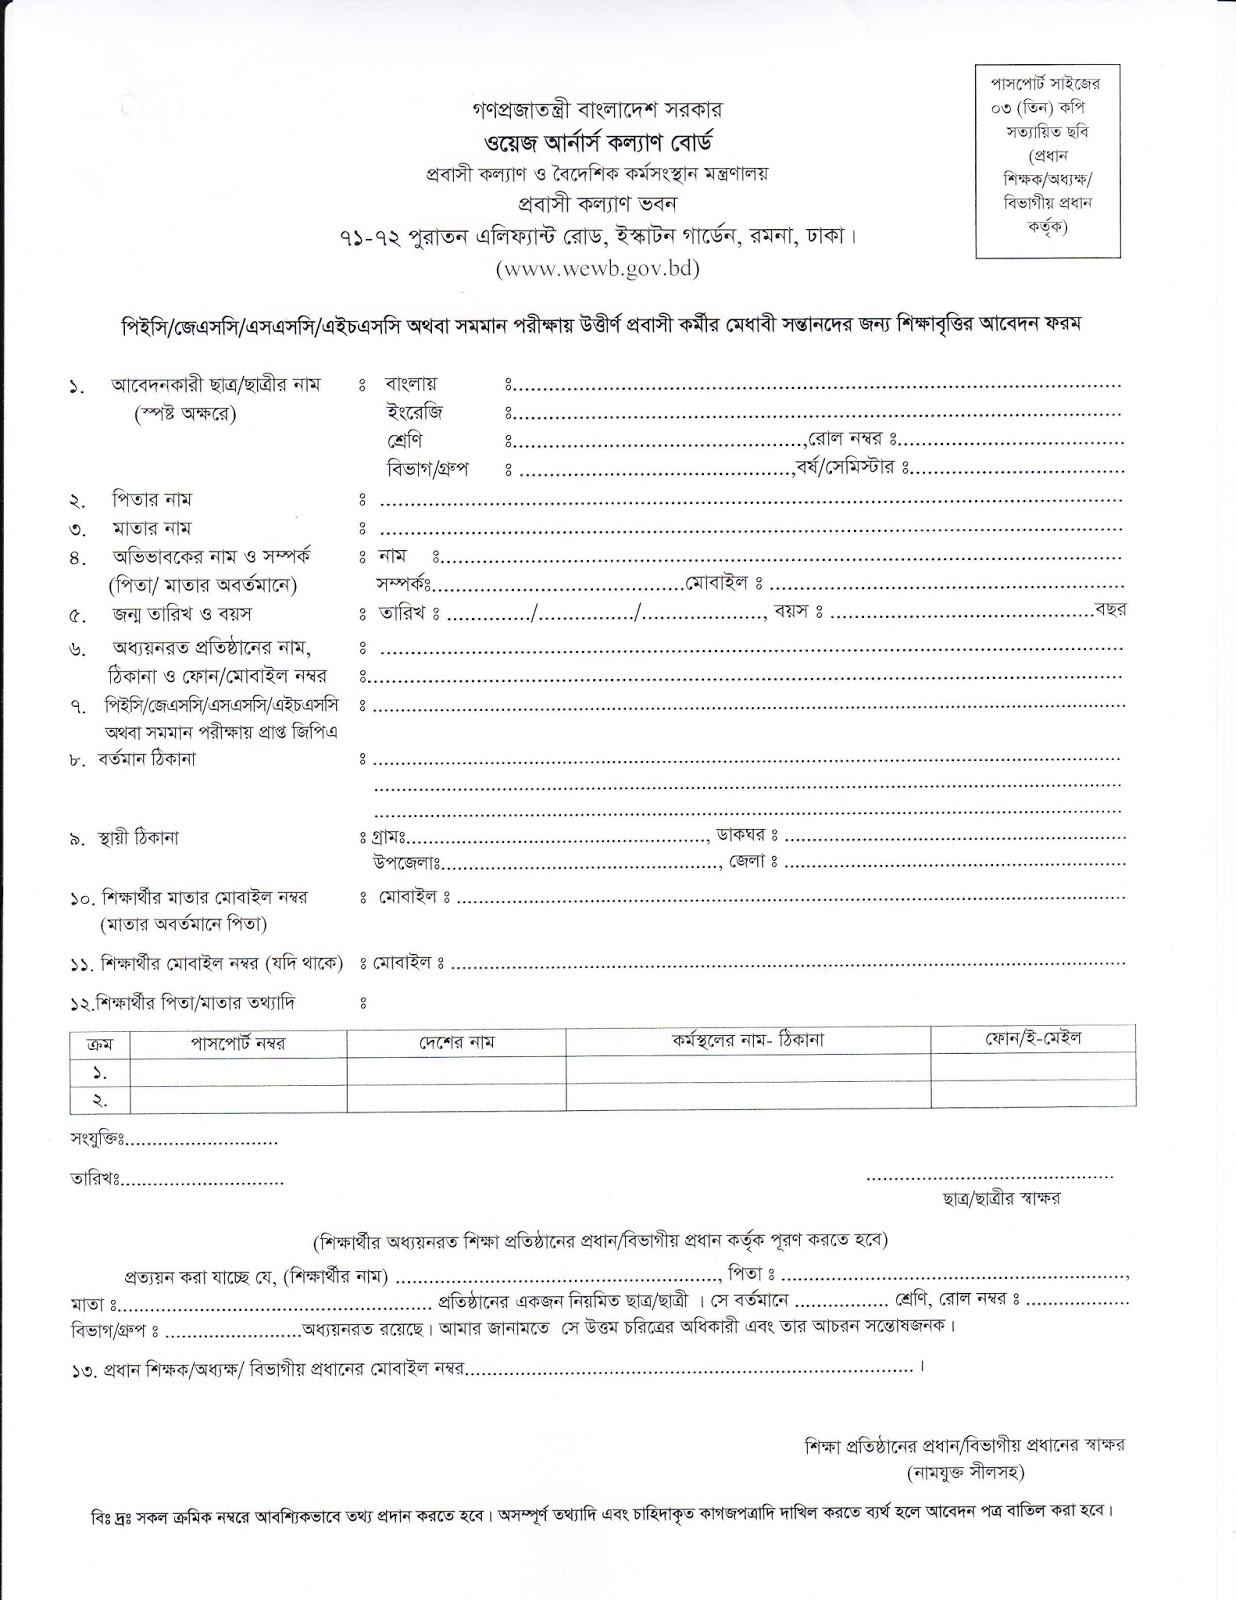 Wage Earners' Welfare Board (WEWB) Scholarship Application Form